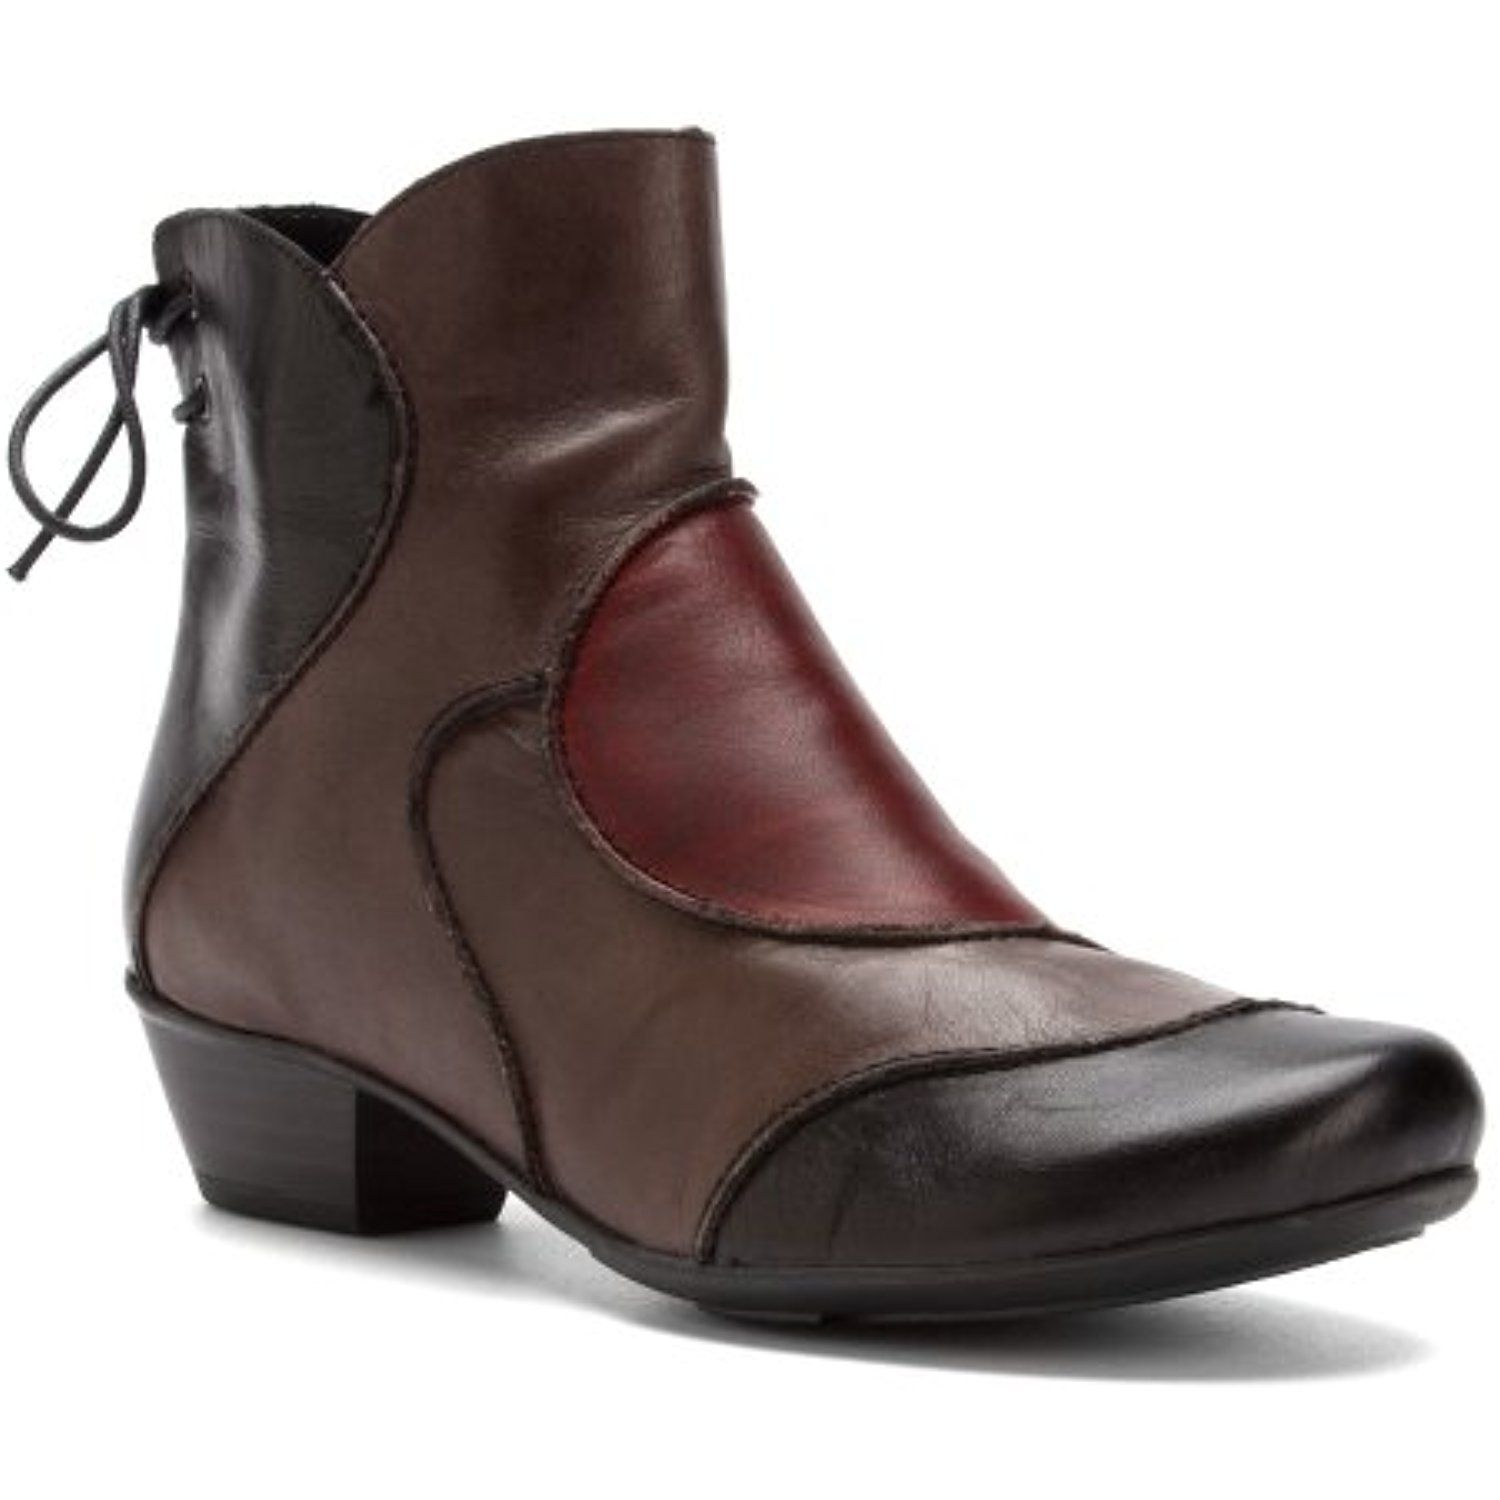 D7380 Milla 80 Casual Ankle Boot - Womens